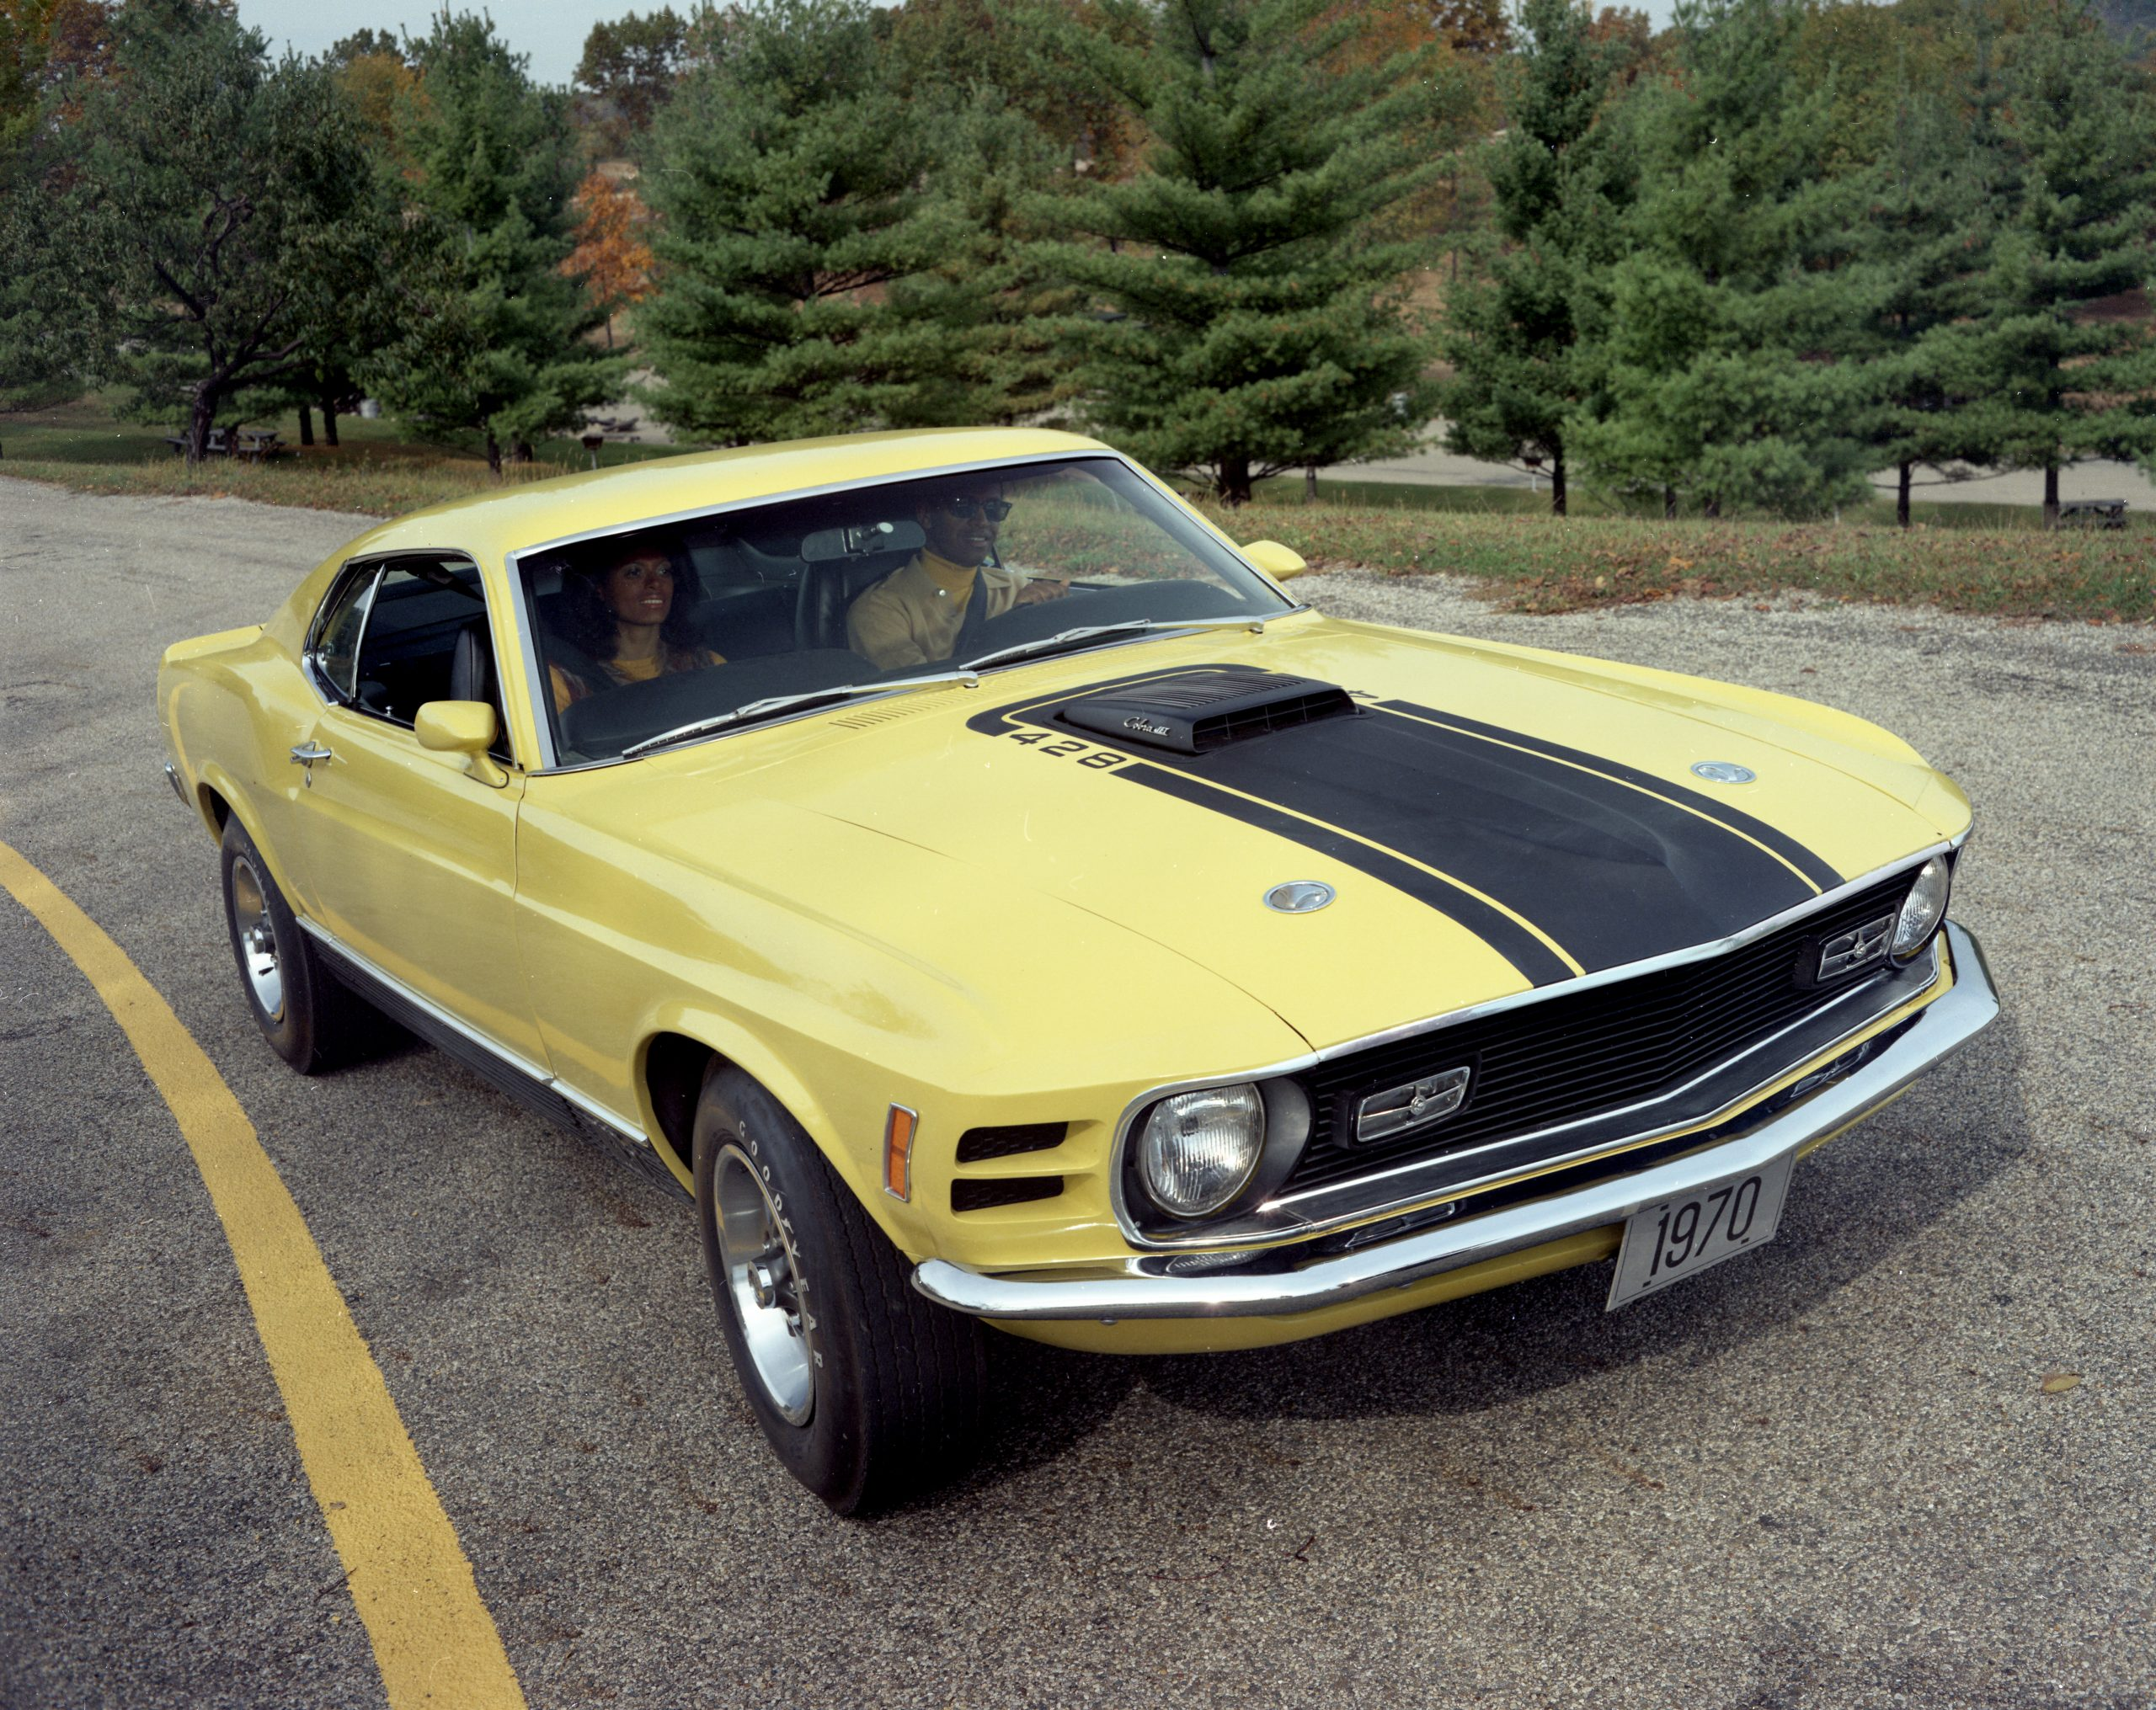 1970 Yellow Ford Mustang Mach 1 Fastback